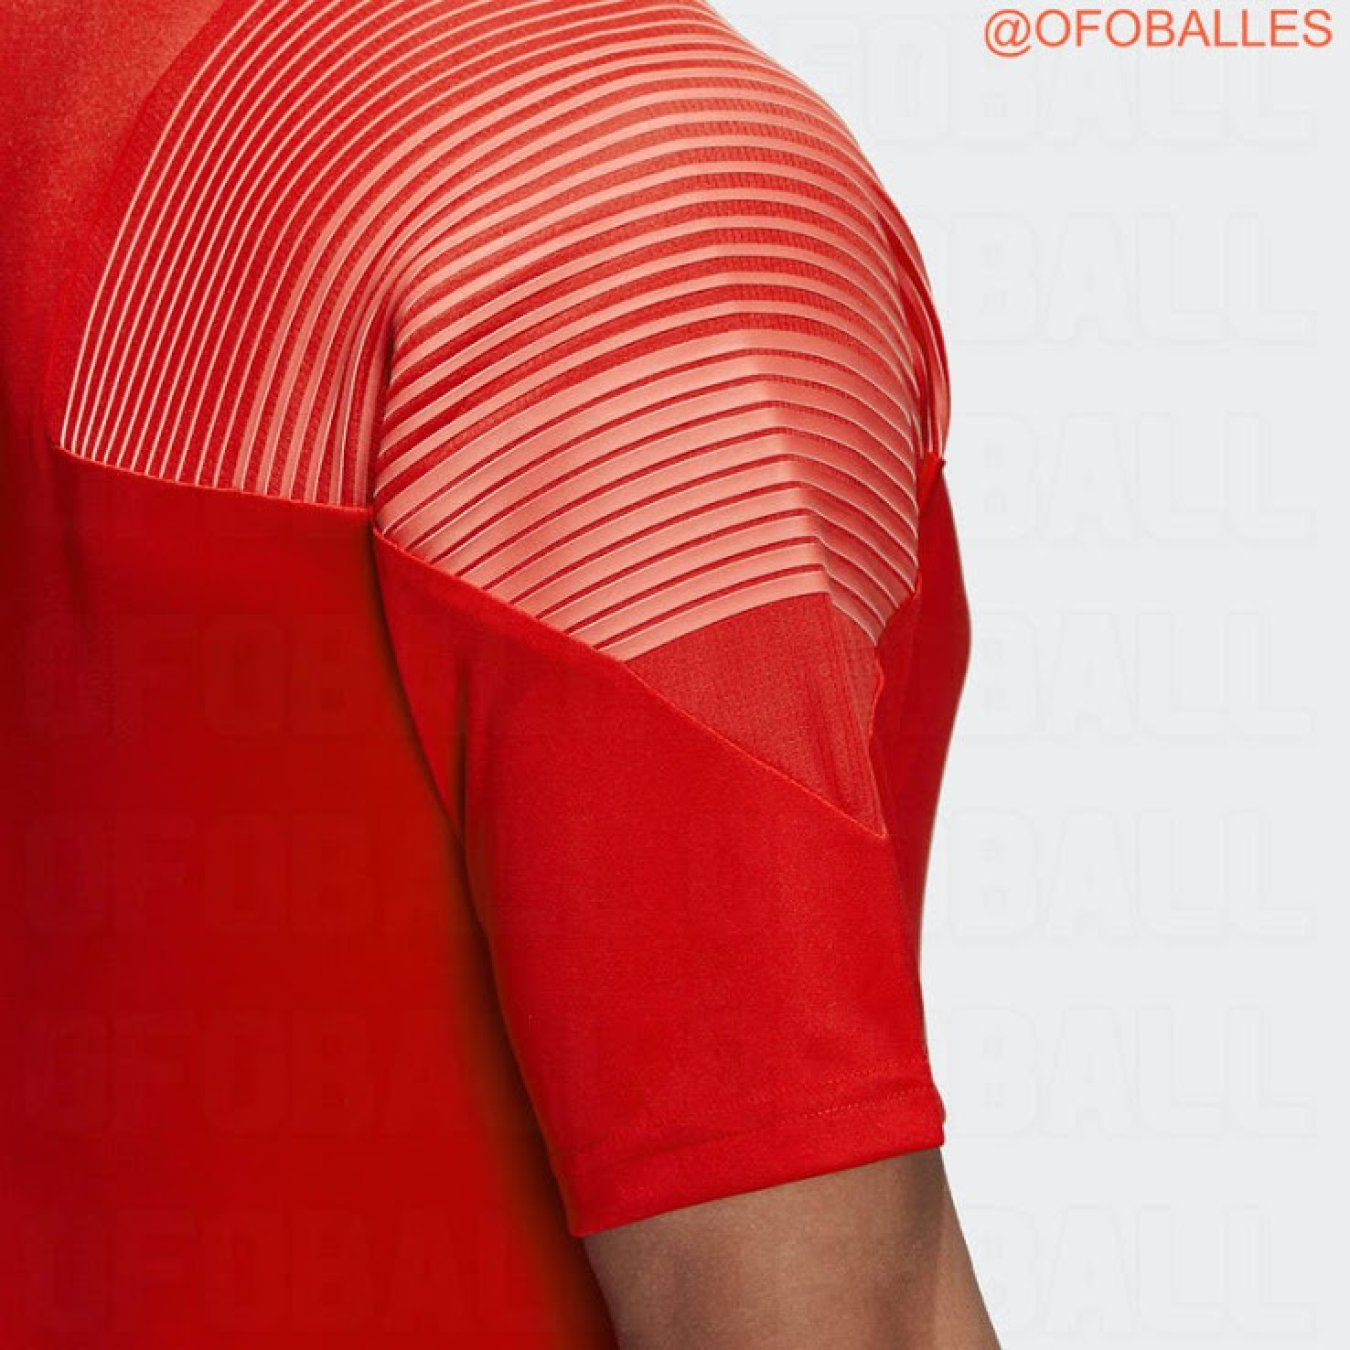 a0023bba8 Real Madrid will wear red as their third strip next season - AS.com